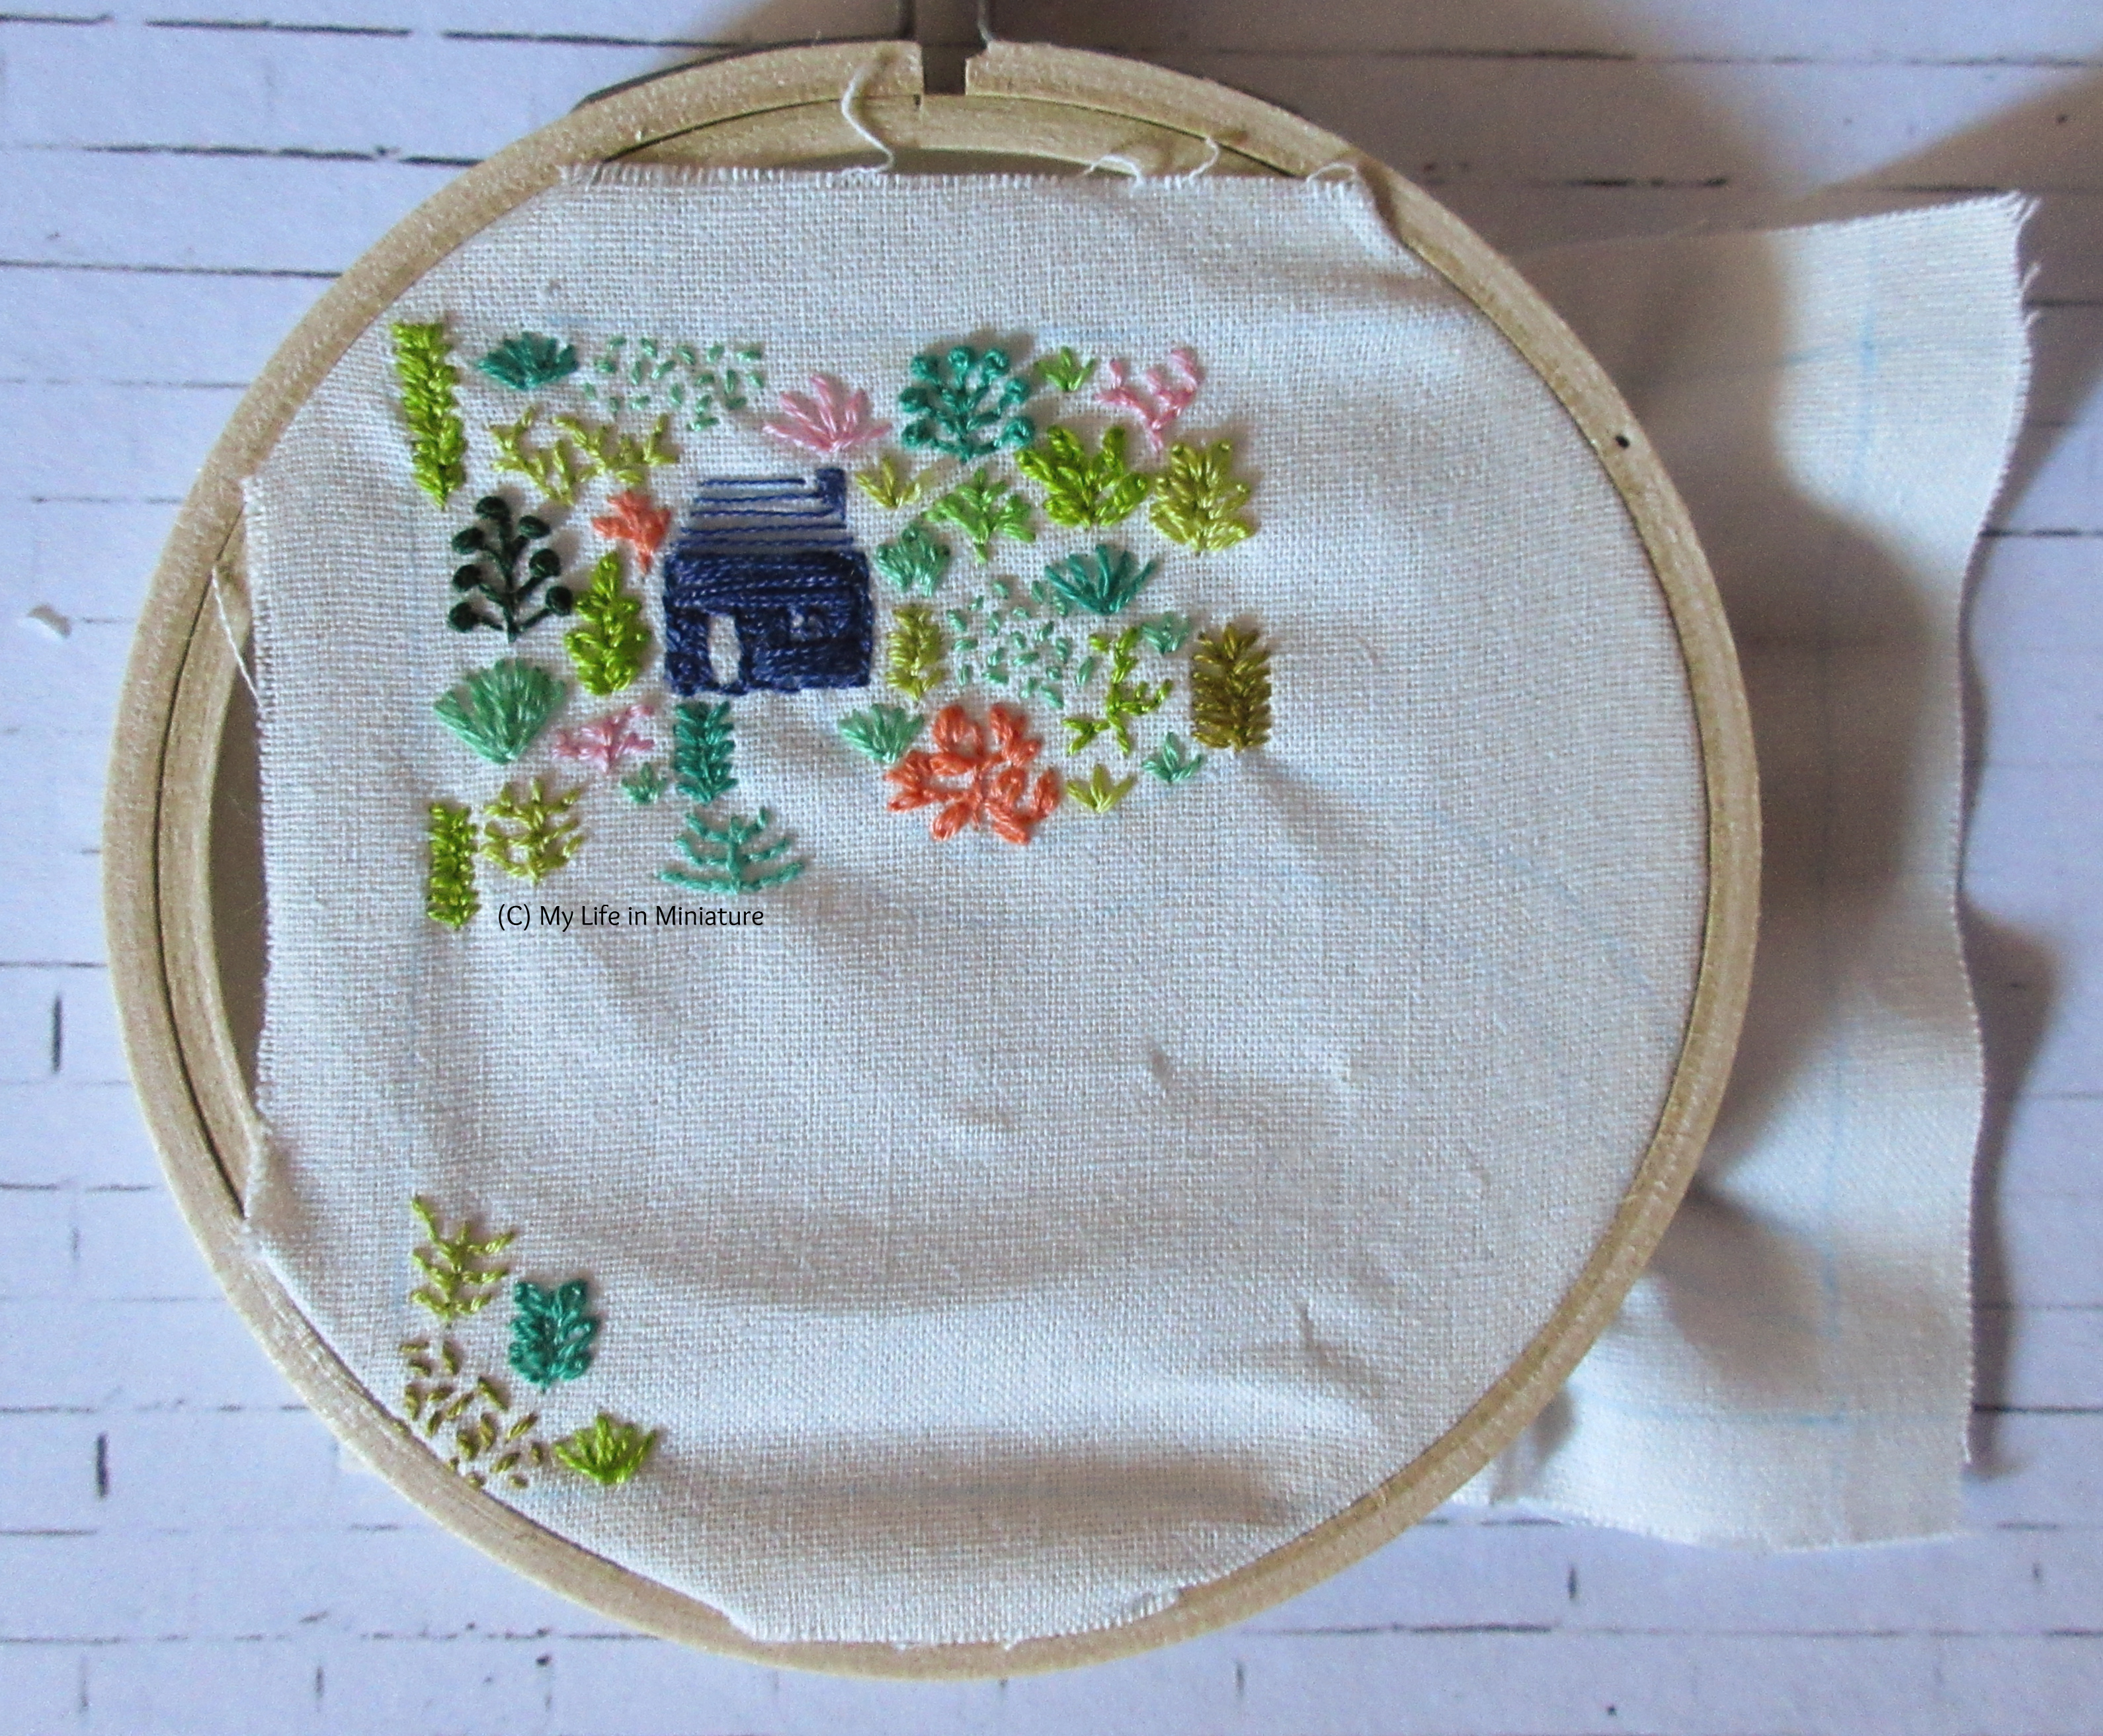 White fabric is in an embroidery hoop. Stitched on it is a small navy blue house, and an assortment of plants in different colours. Most of the plants and the house are in the top-left of the fabric, and the rest are in the bottom-left corner.